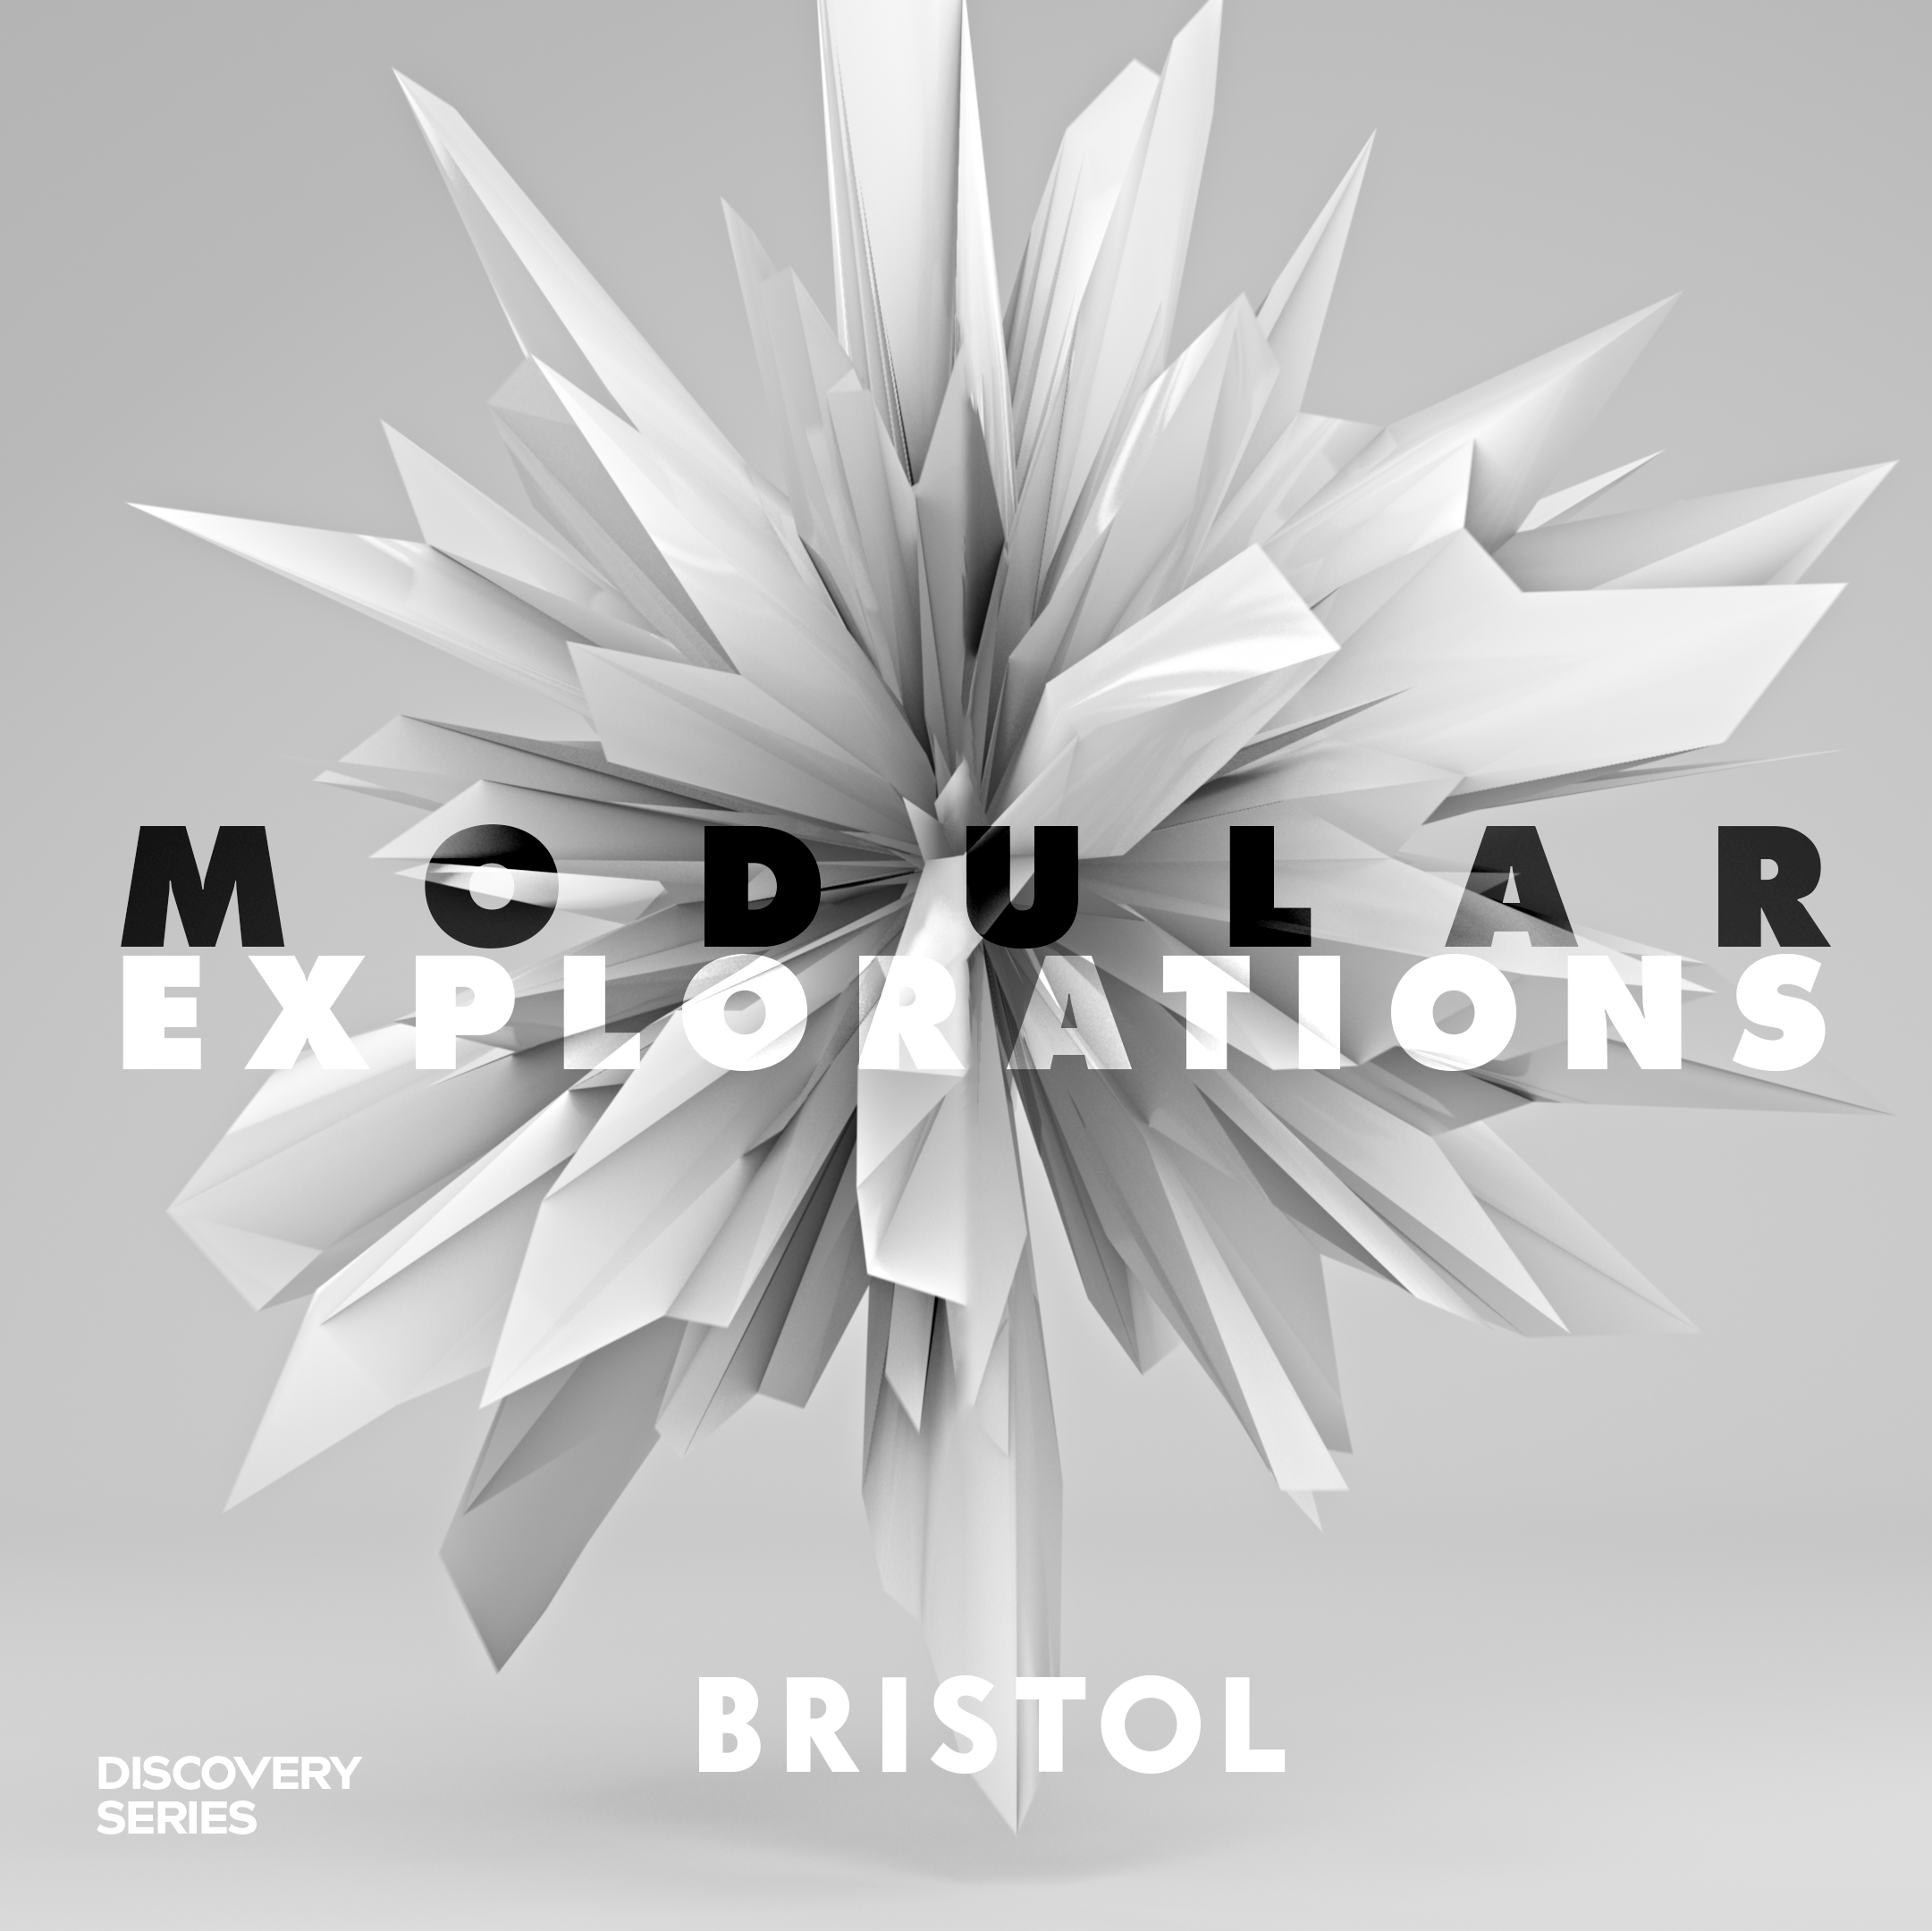 Modular Explorations: Bristol features cinematic alien arcades and cities, deserted crystalline caverns, vast hives of digital insects, distressed metal impacts and abstract user interface sounds.